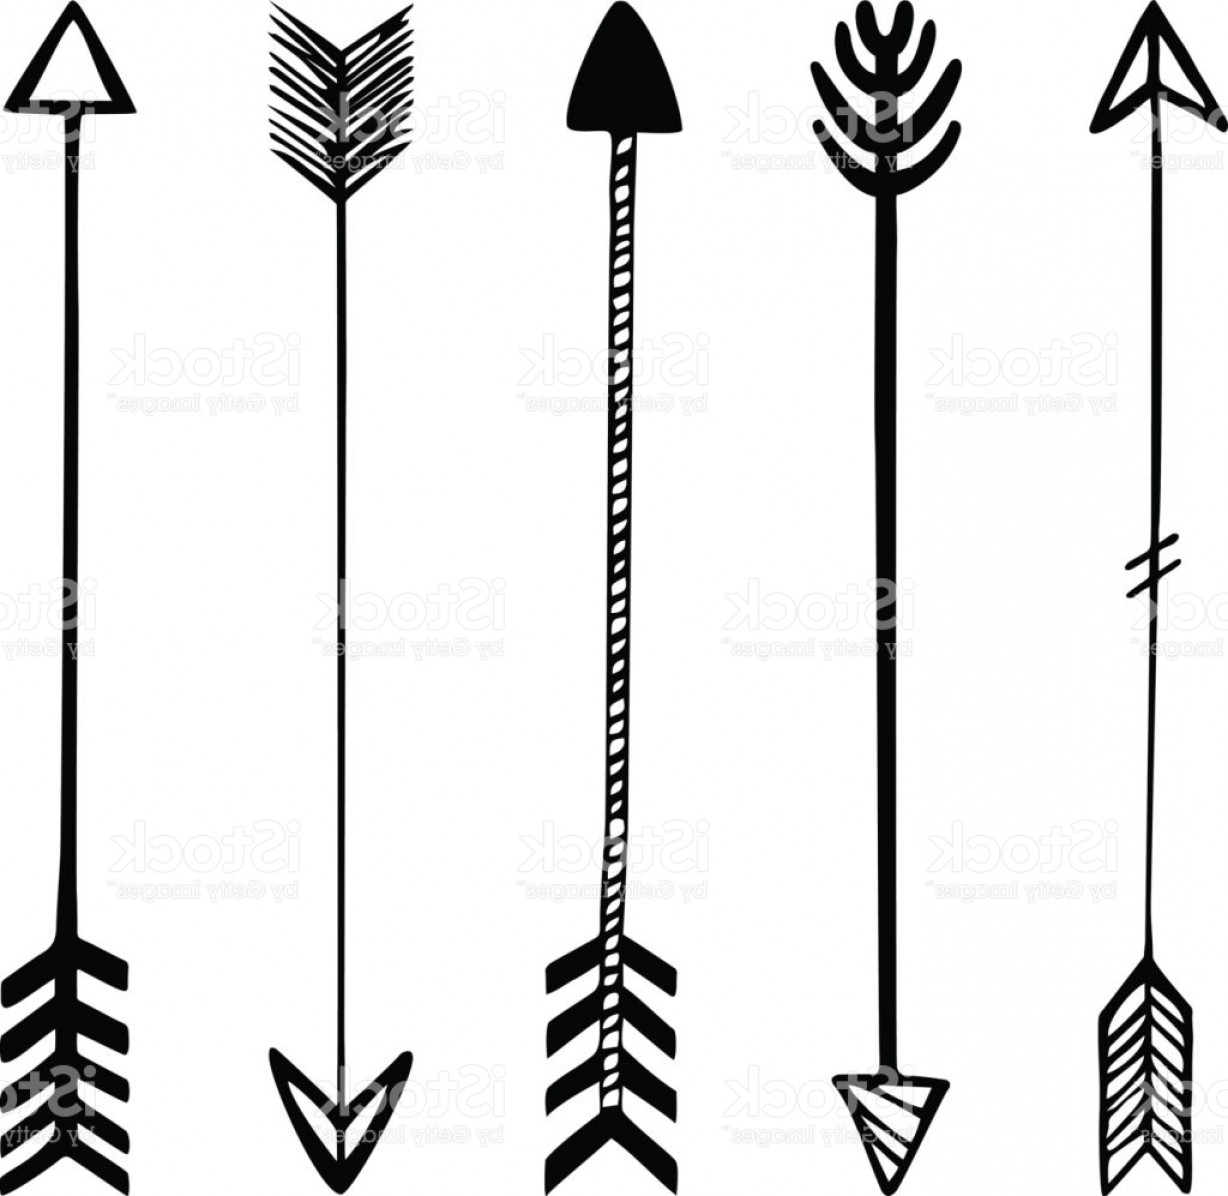 1228x1196 Set Of Black Hand Drawn Arrows Hipster Ethnic Vector Elements Gm